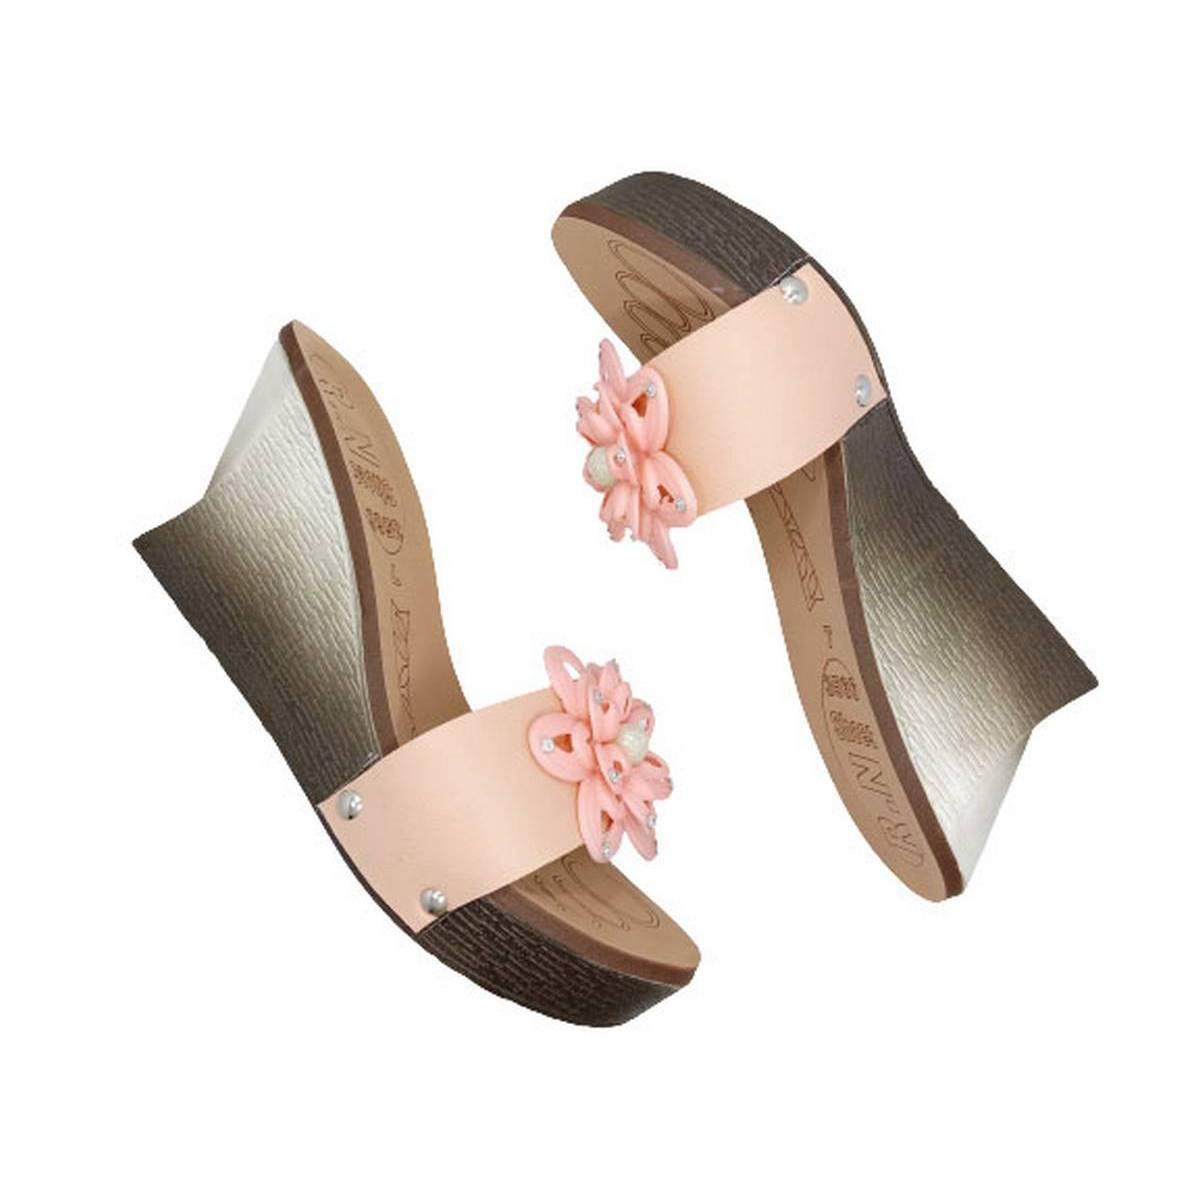 Women fashion  style wedge sole summer  sandals/ wedding and party wear  shoes